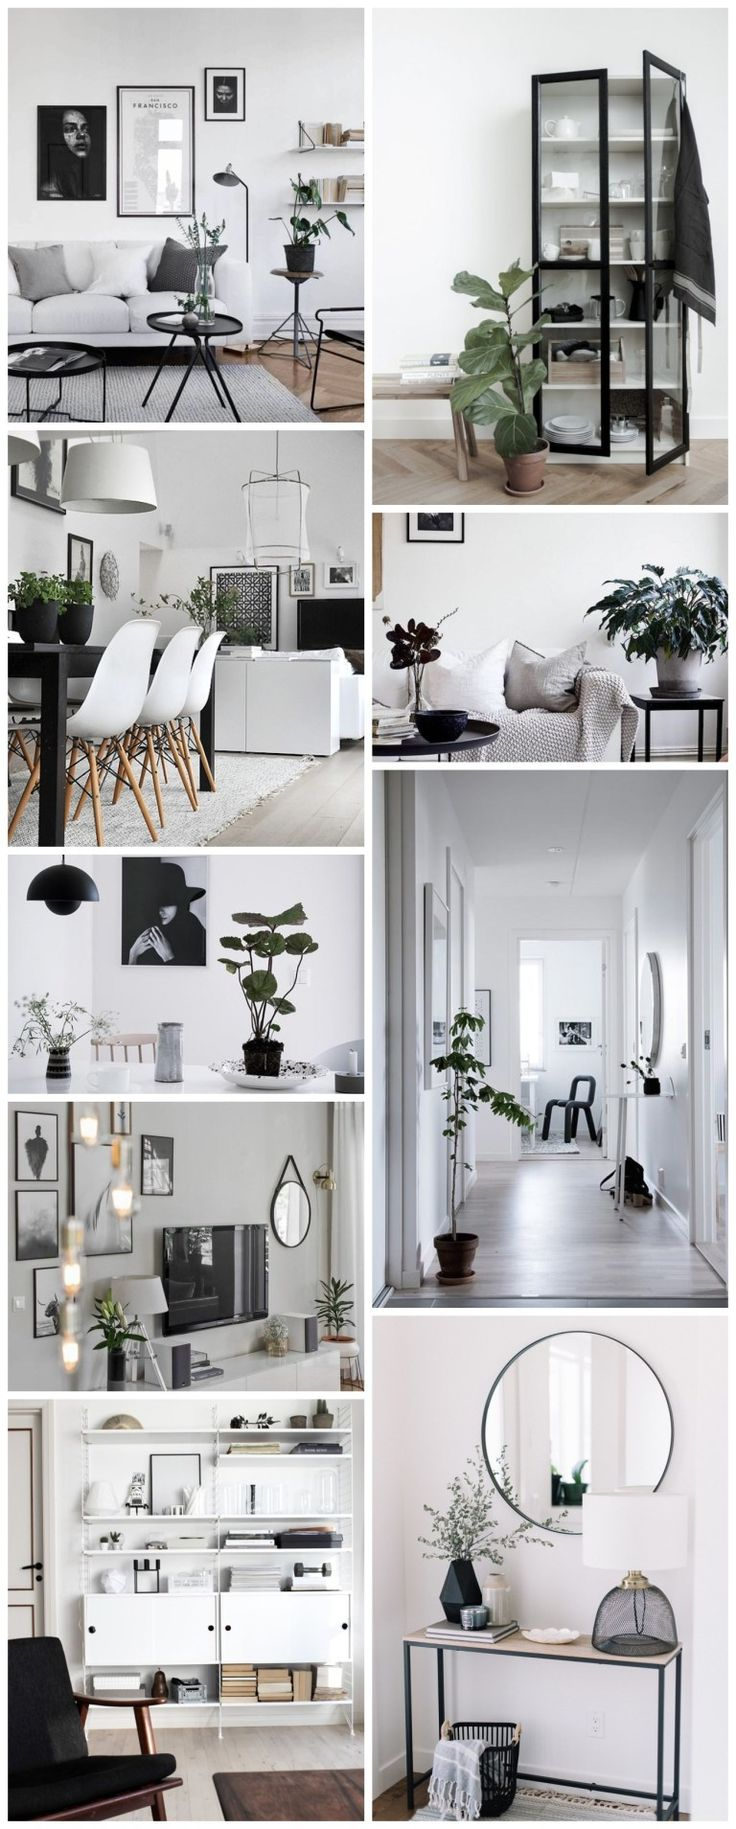 Redecorating Living Room: Minimalist Home Redecorating Inspiration In 2020